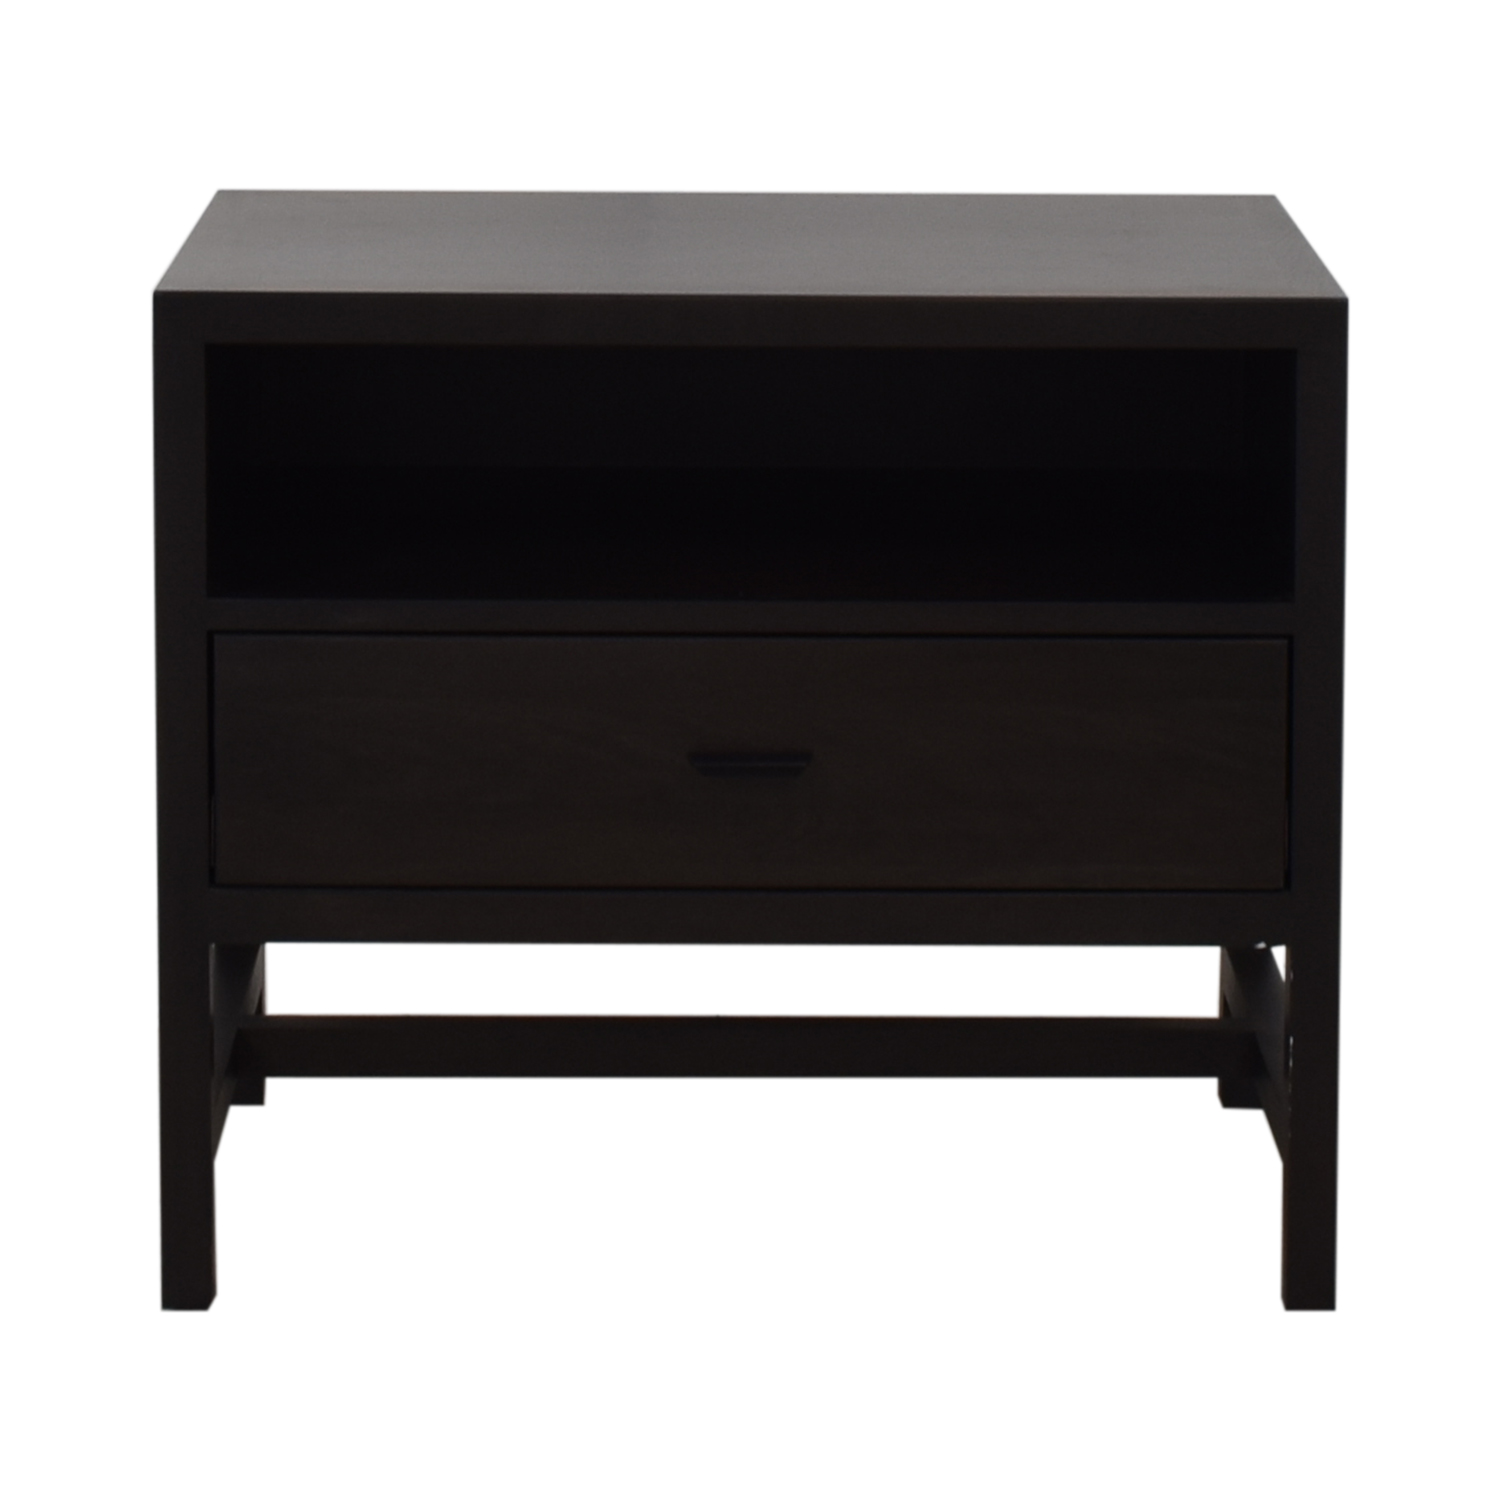 Room & Board Berkeley Nightstand Room & Board